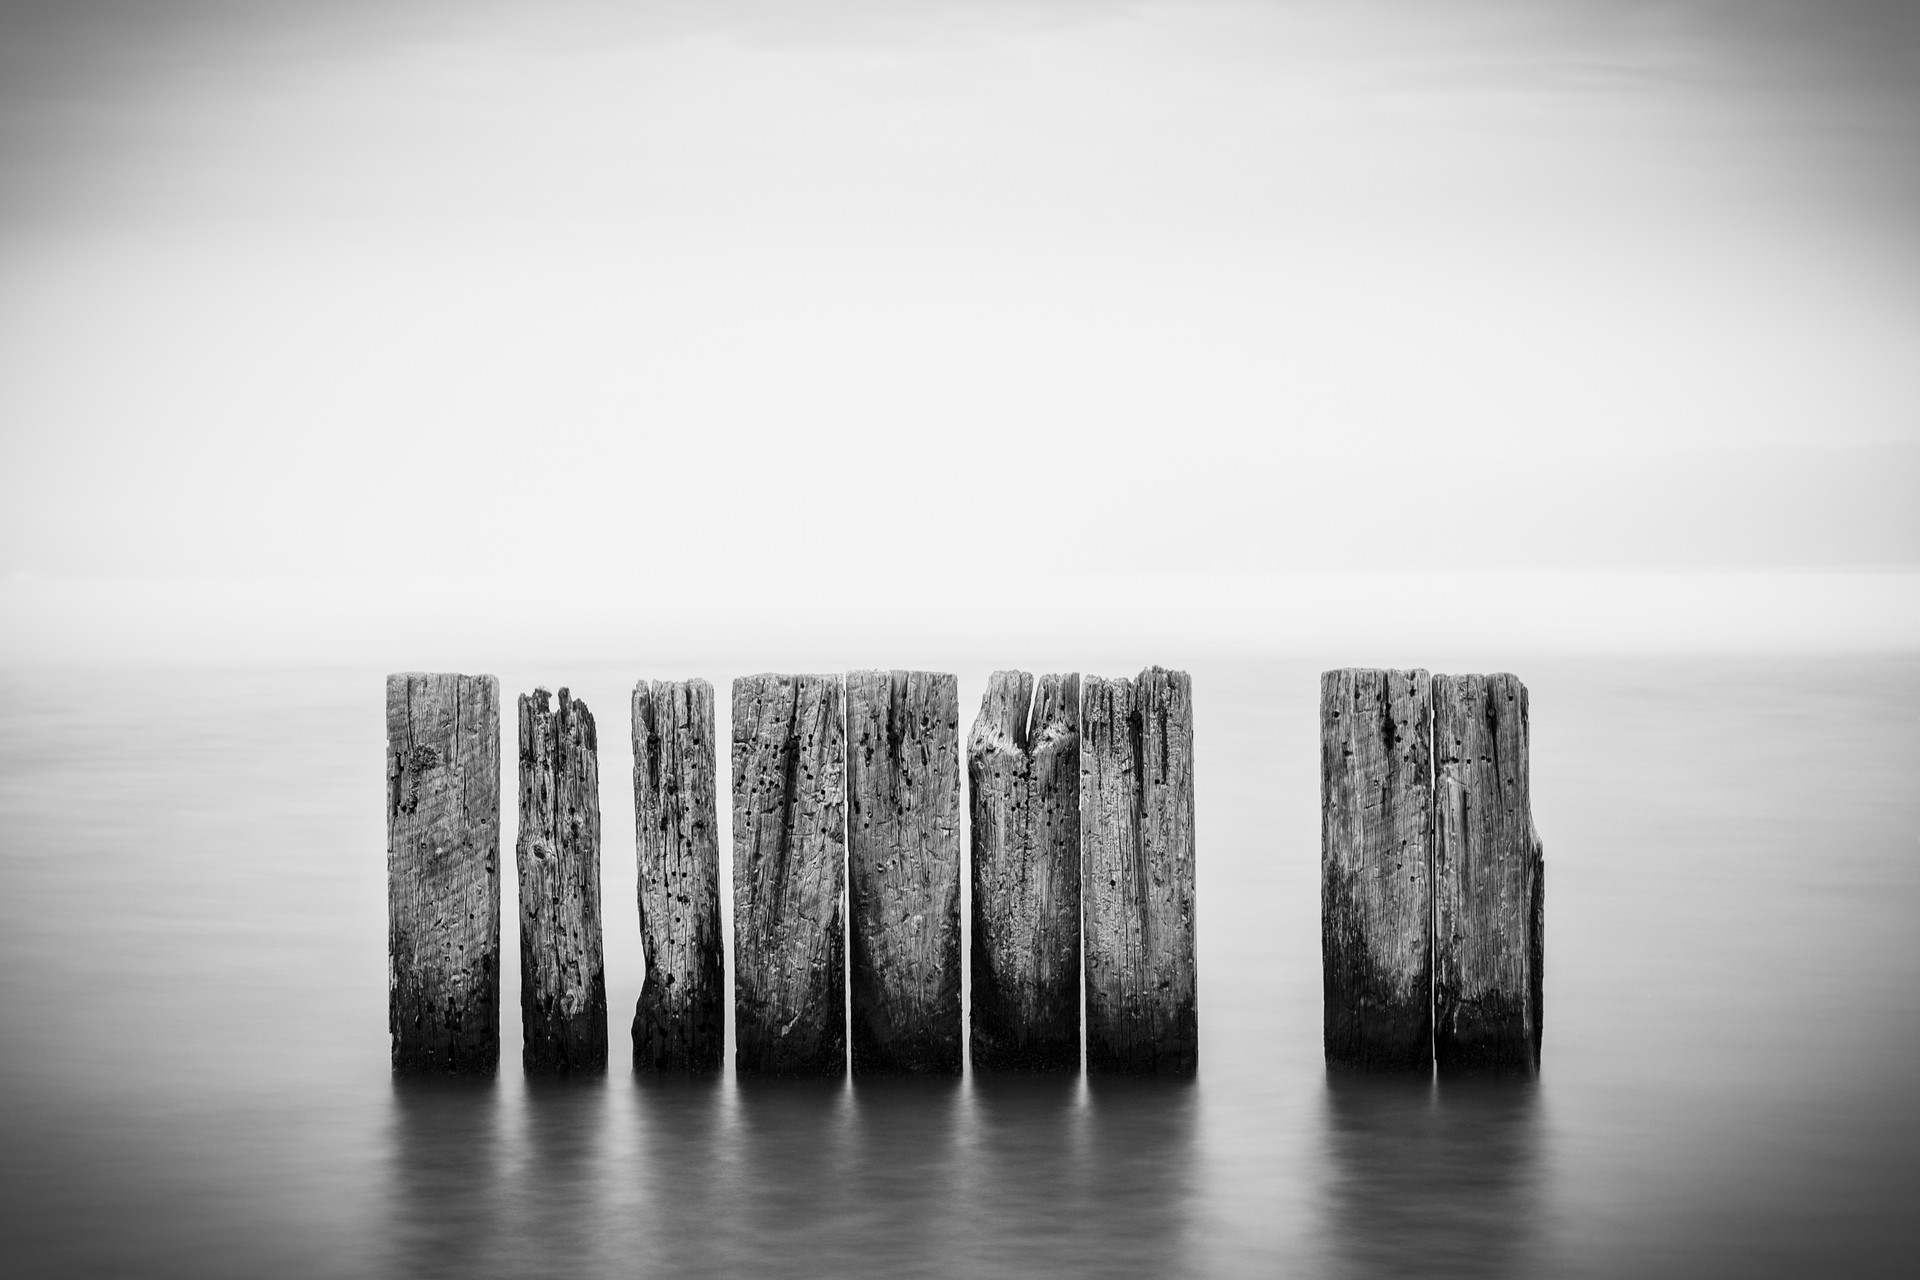 Piling Tranquility